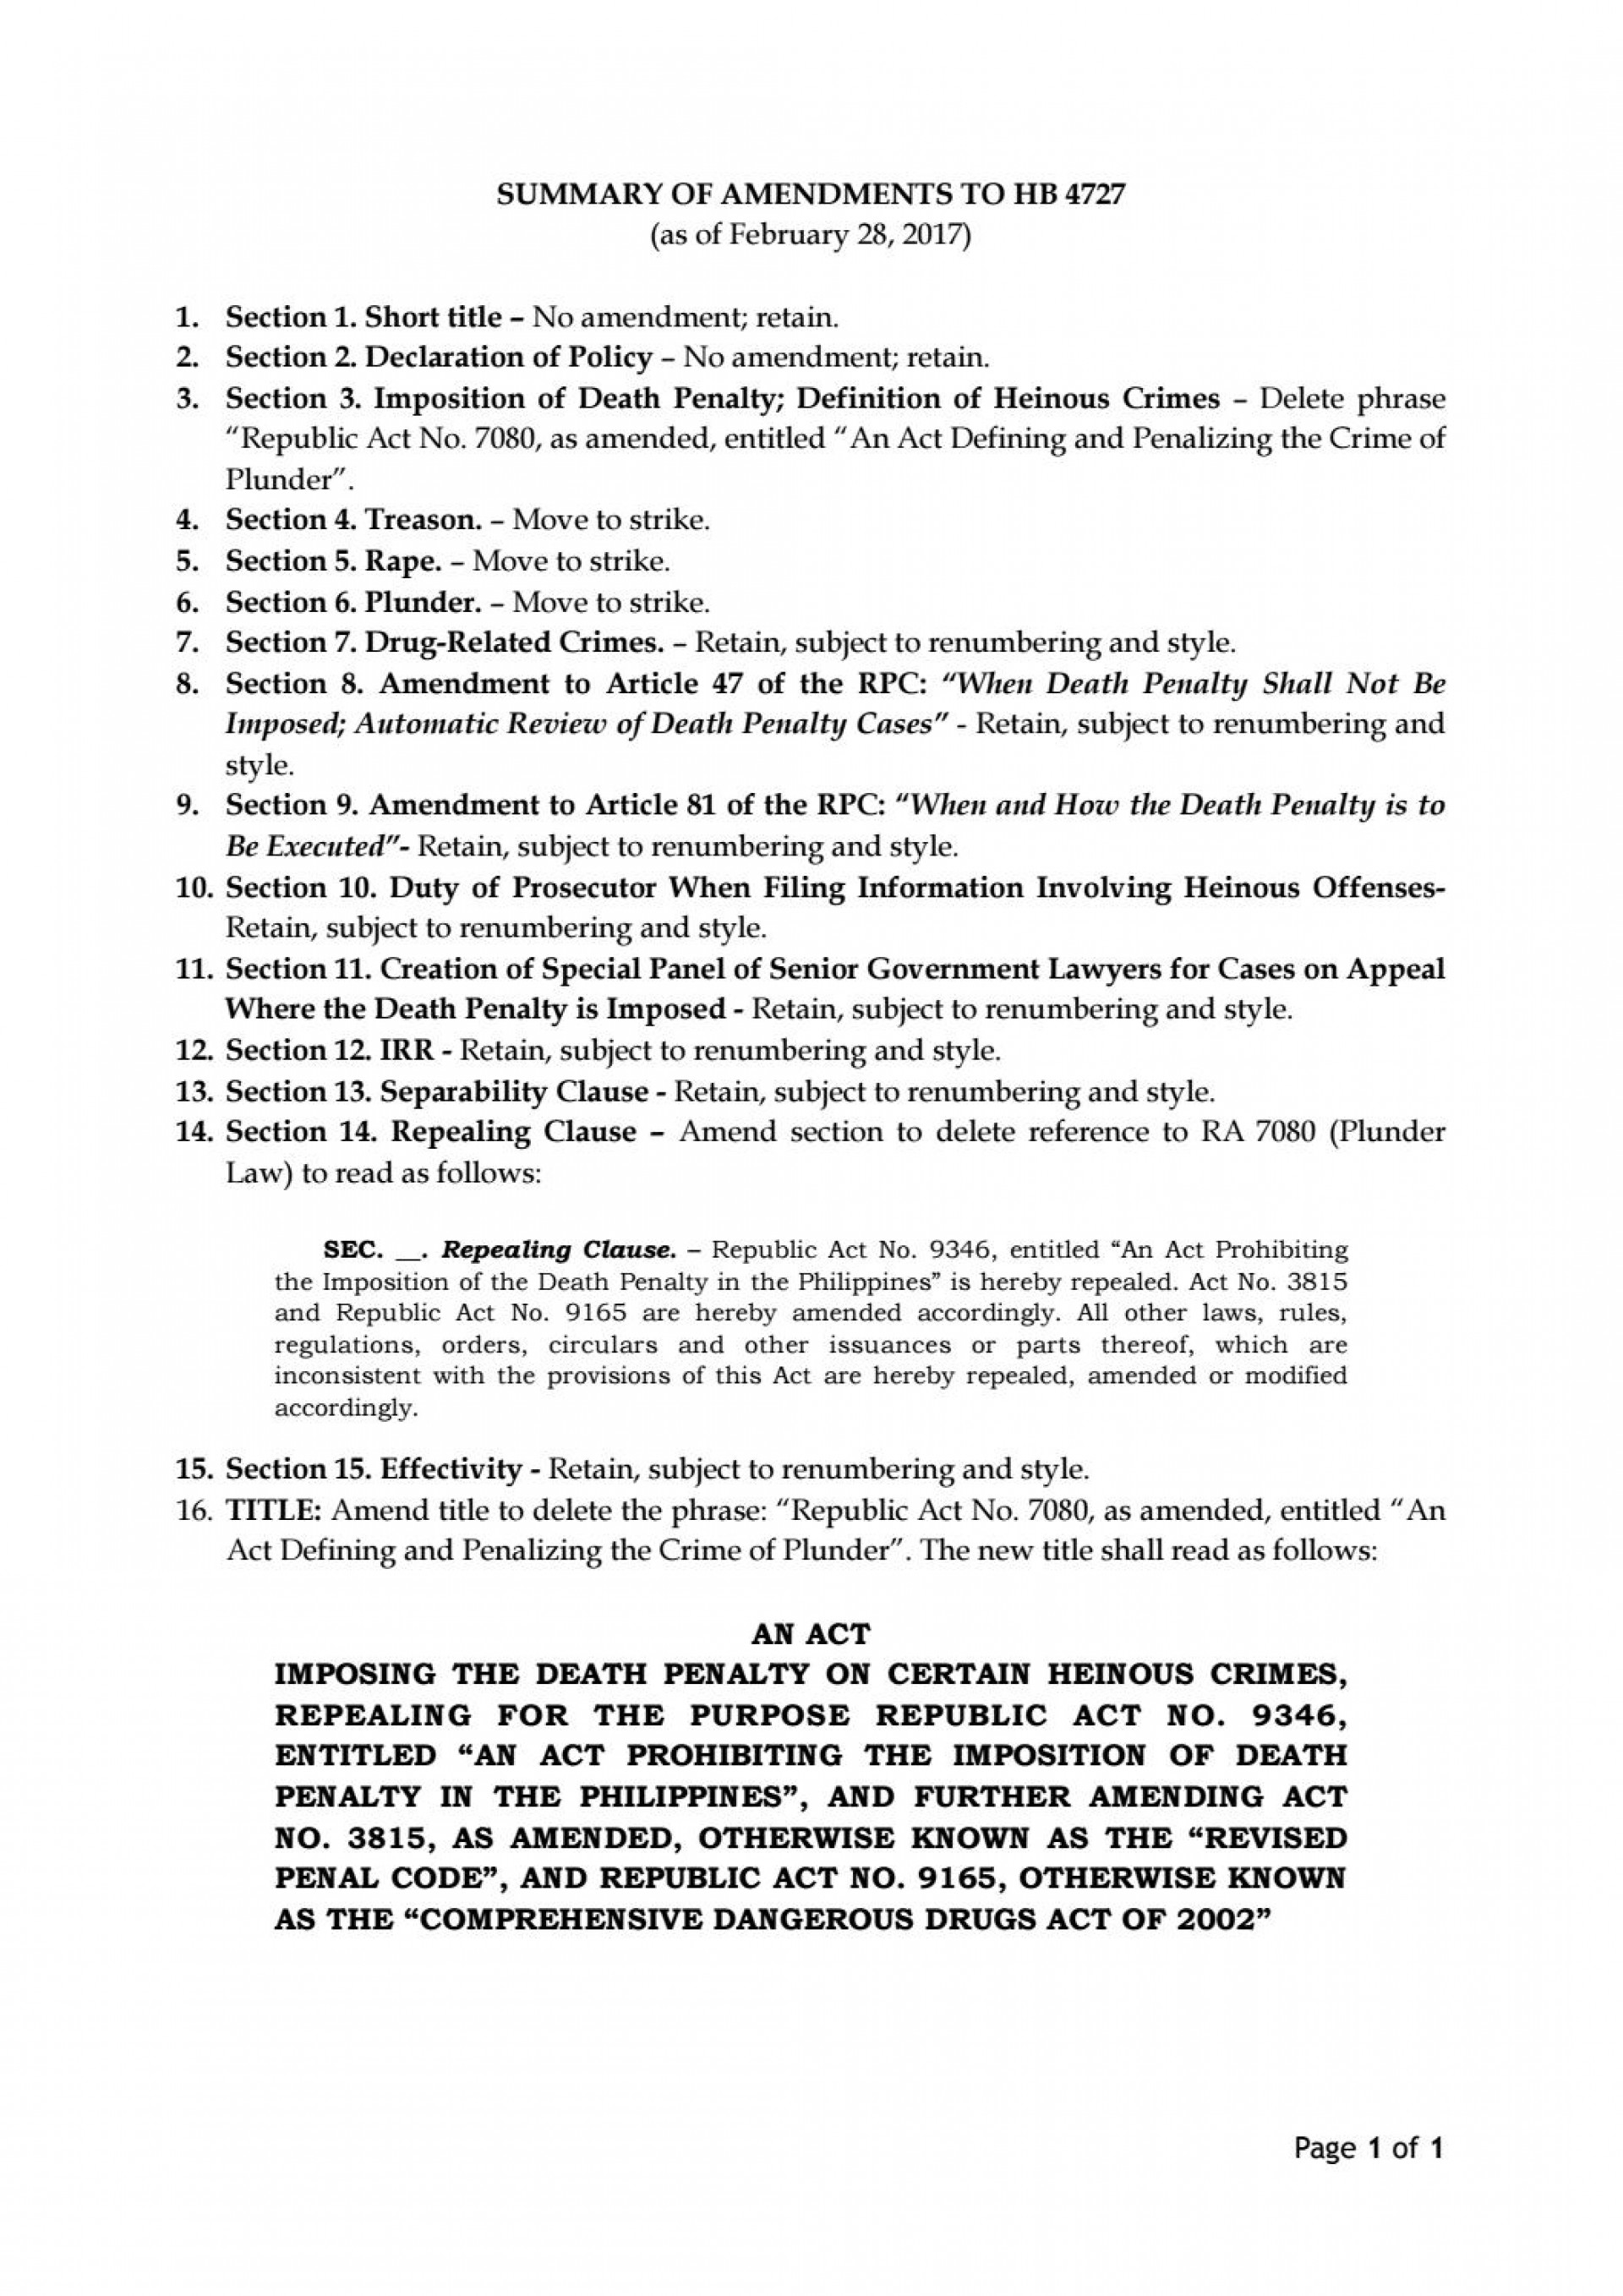 002 Essay Example Argumentative On Death Penalty Page 1 Unbelievable Ideas Persuasive About In The Philippines Pro 1920